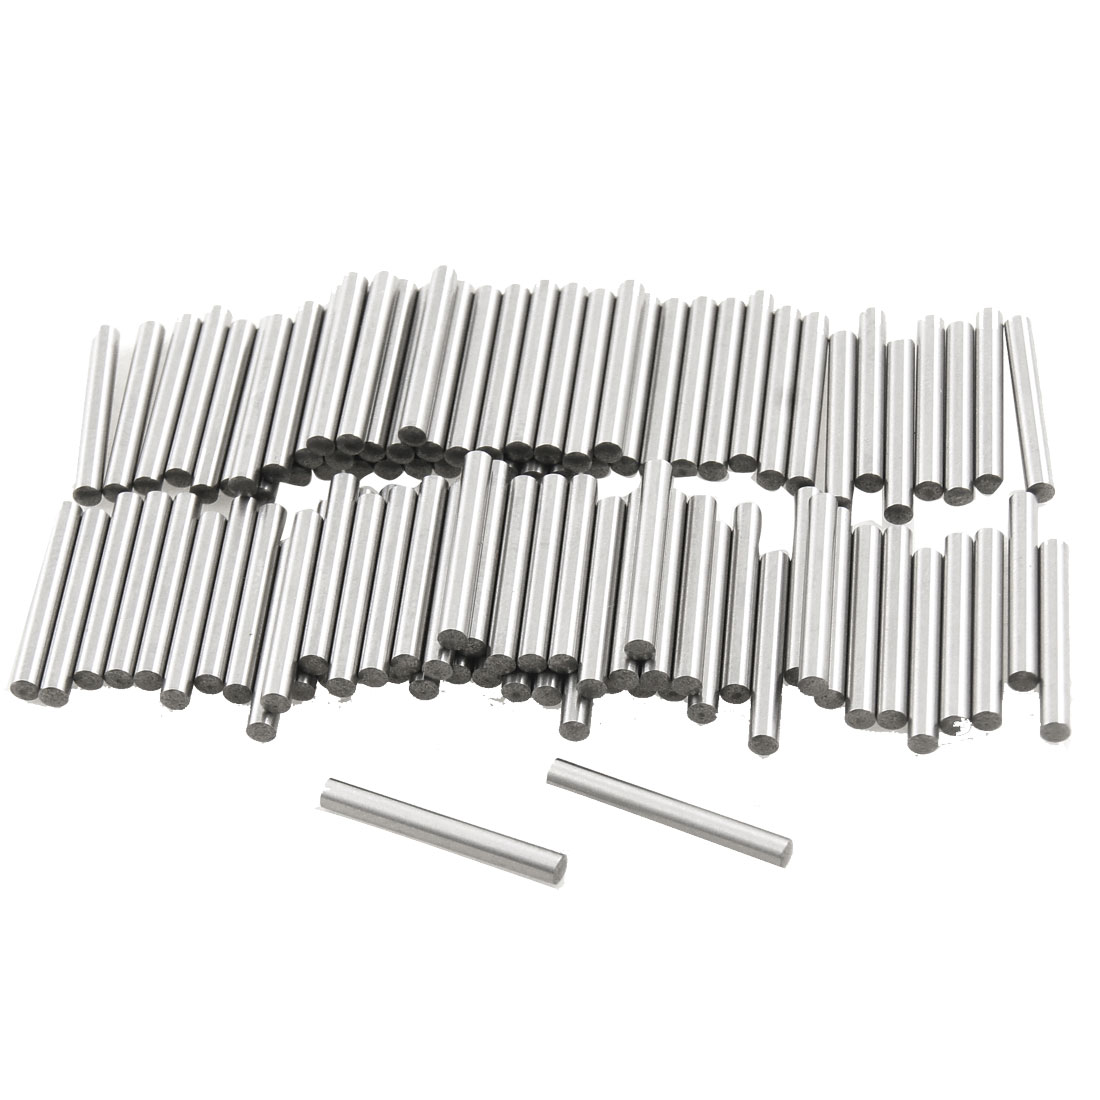 "100 Pcs Stainless Steel 3/40"" x 5/8"" Cylinder Dowel Pins Fasten Elements"